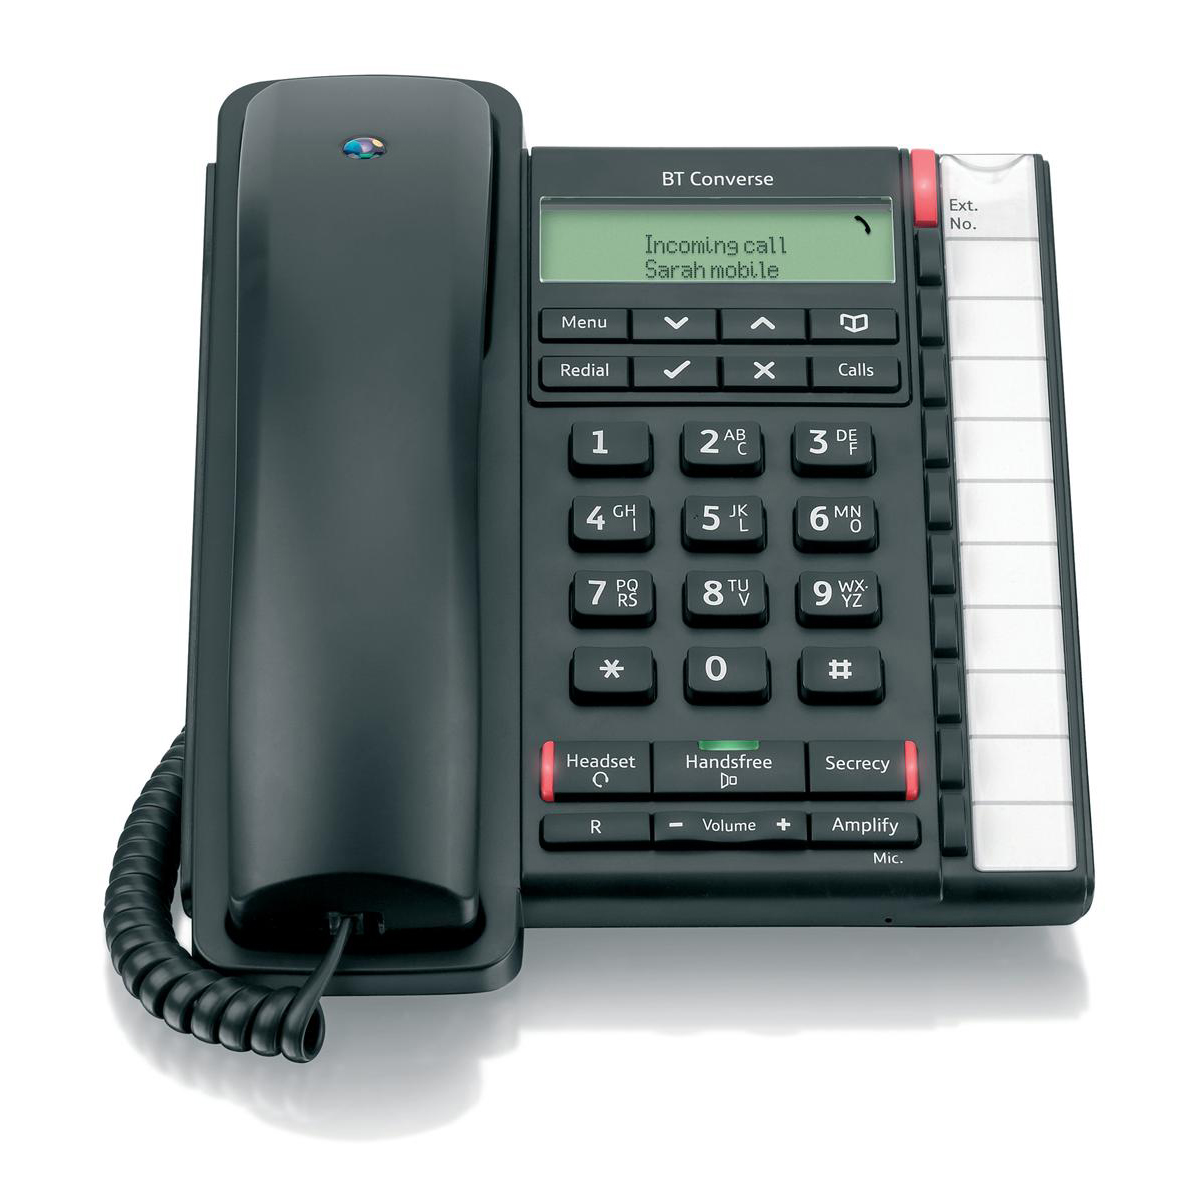 Analogue telephones BT Converse 2300 Telephone Caller Display 10 Redial 100-entry Directory Black Ref 040212